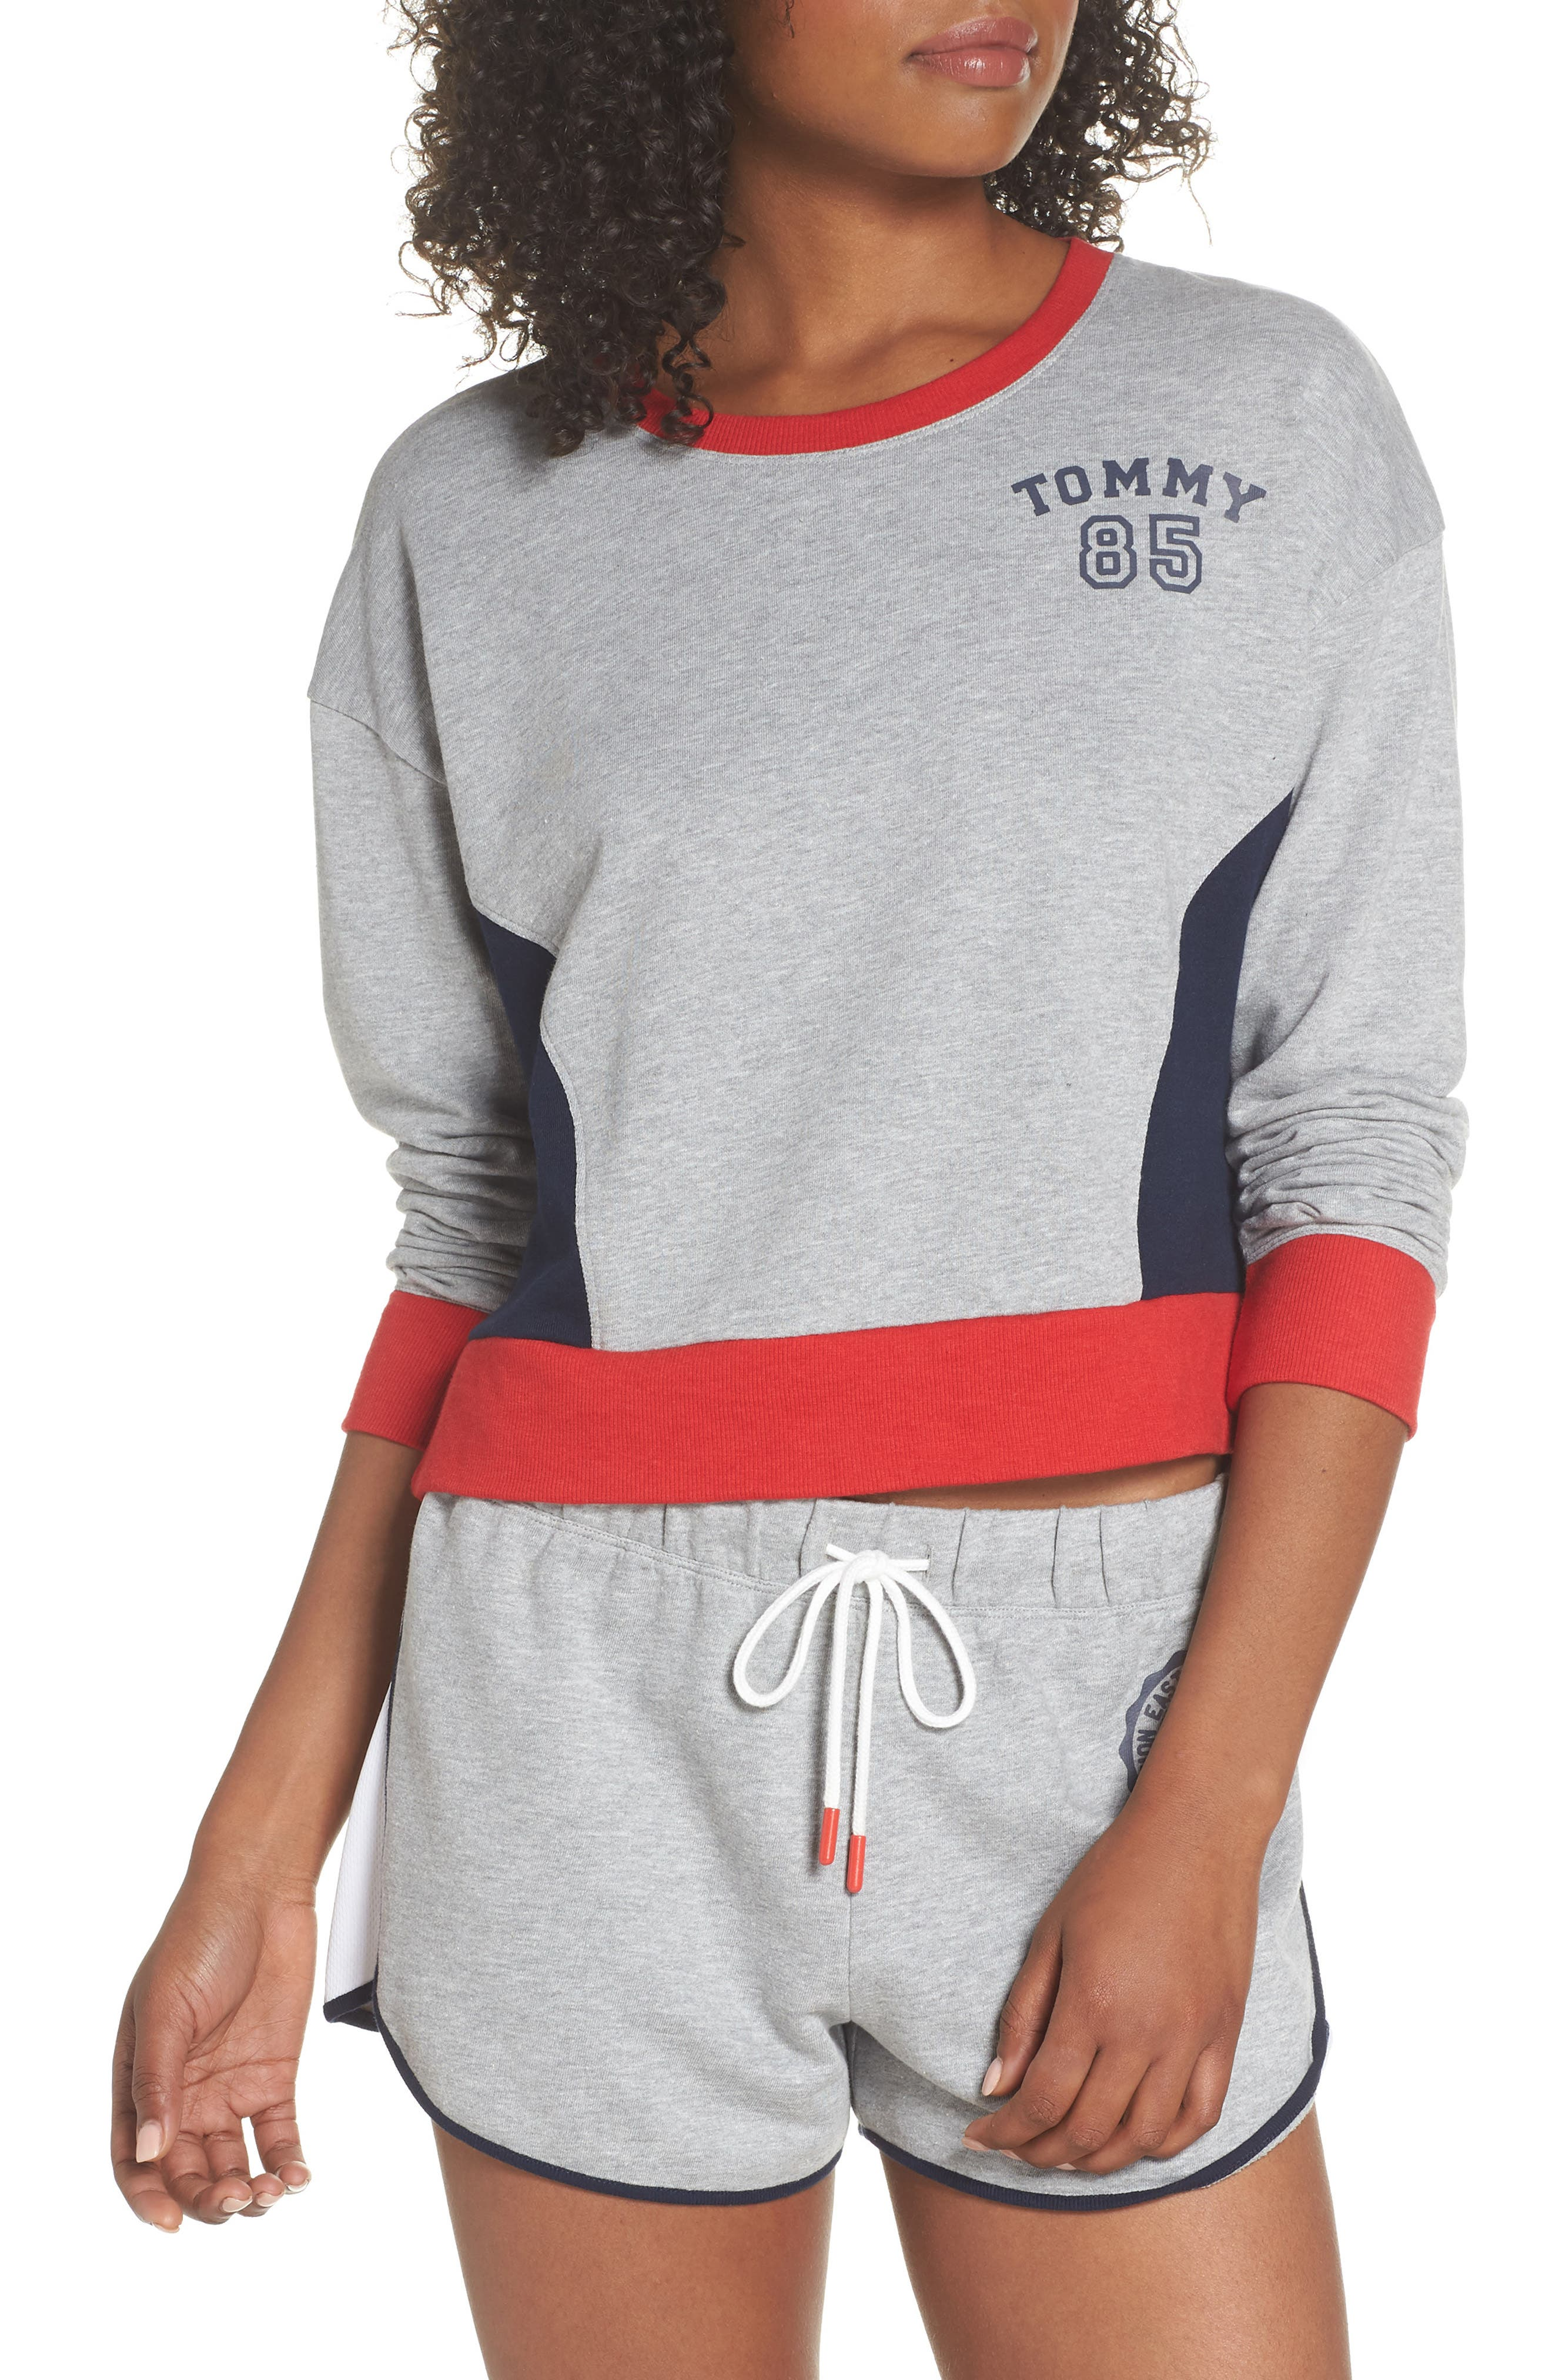 Tommy Hilfiger Crop Lounge Sweatshirt